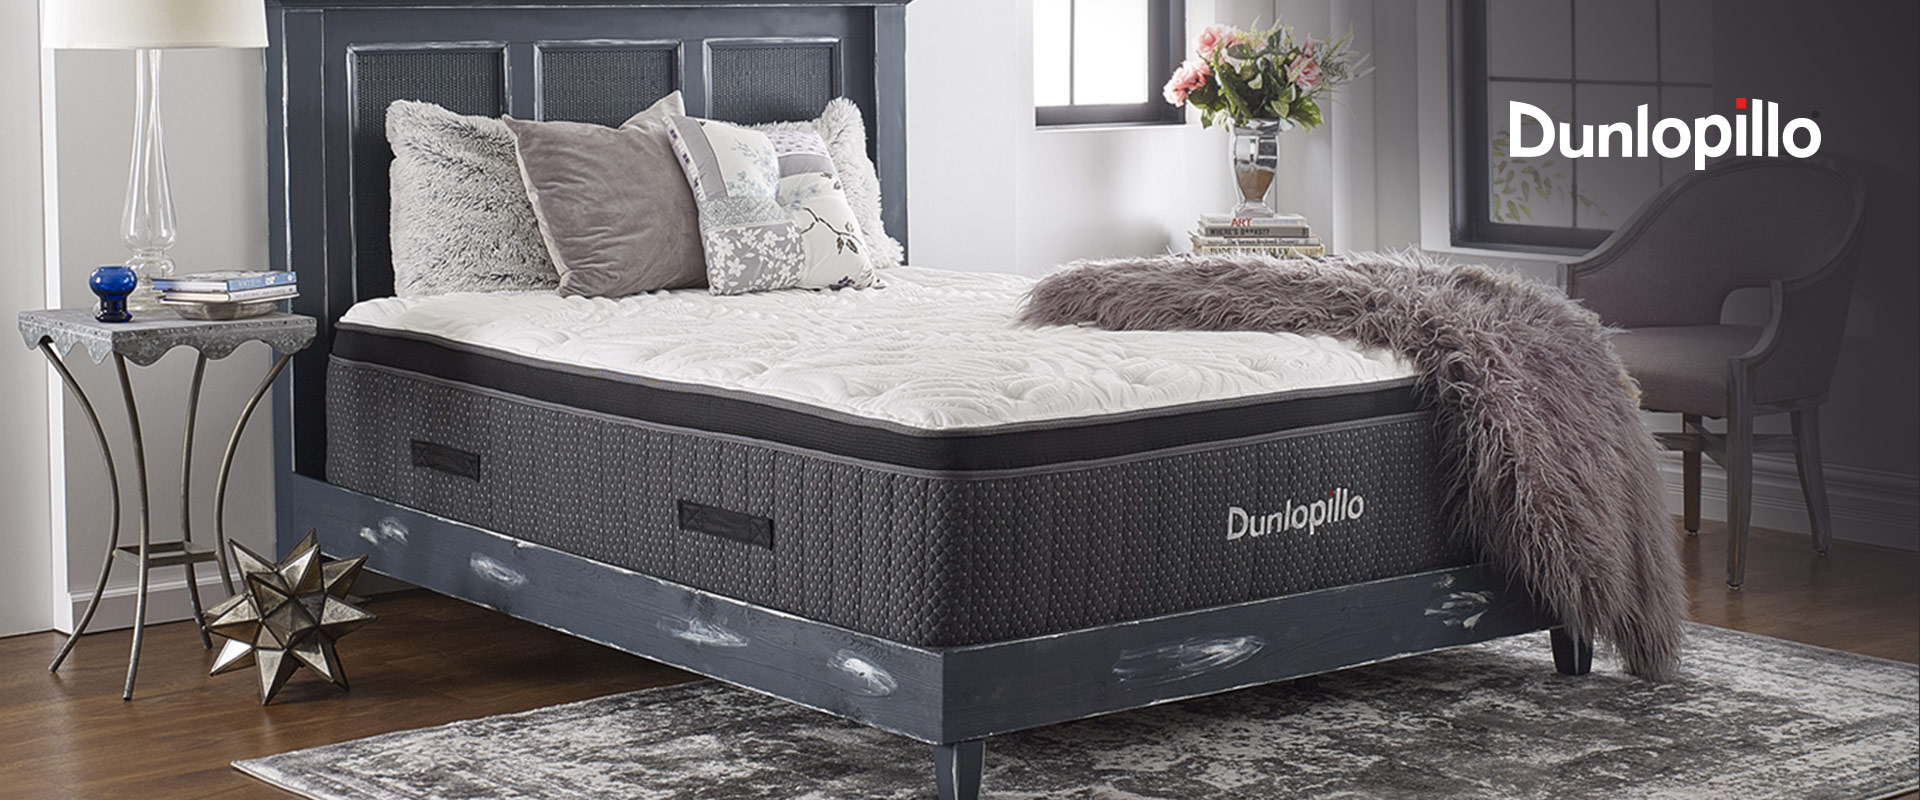 Dunlopillo Portofino by Sherwood Bedding